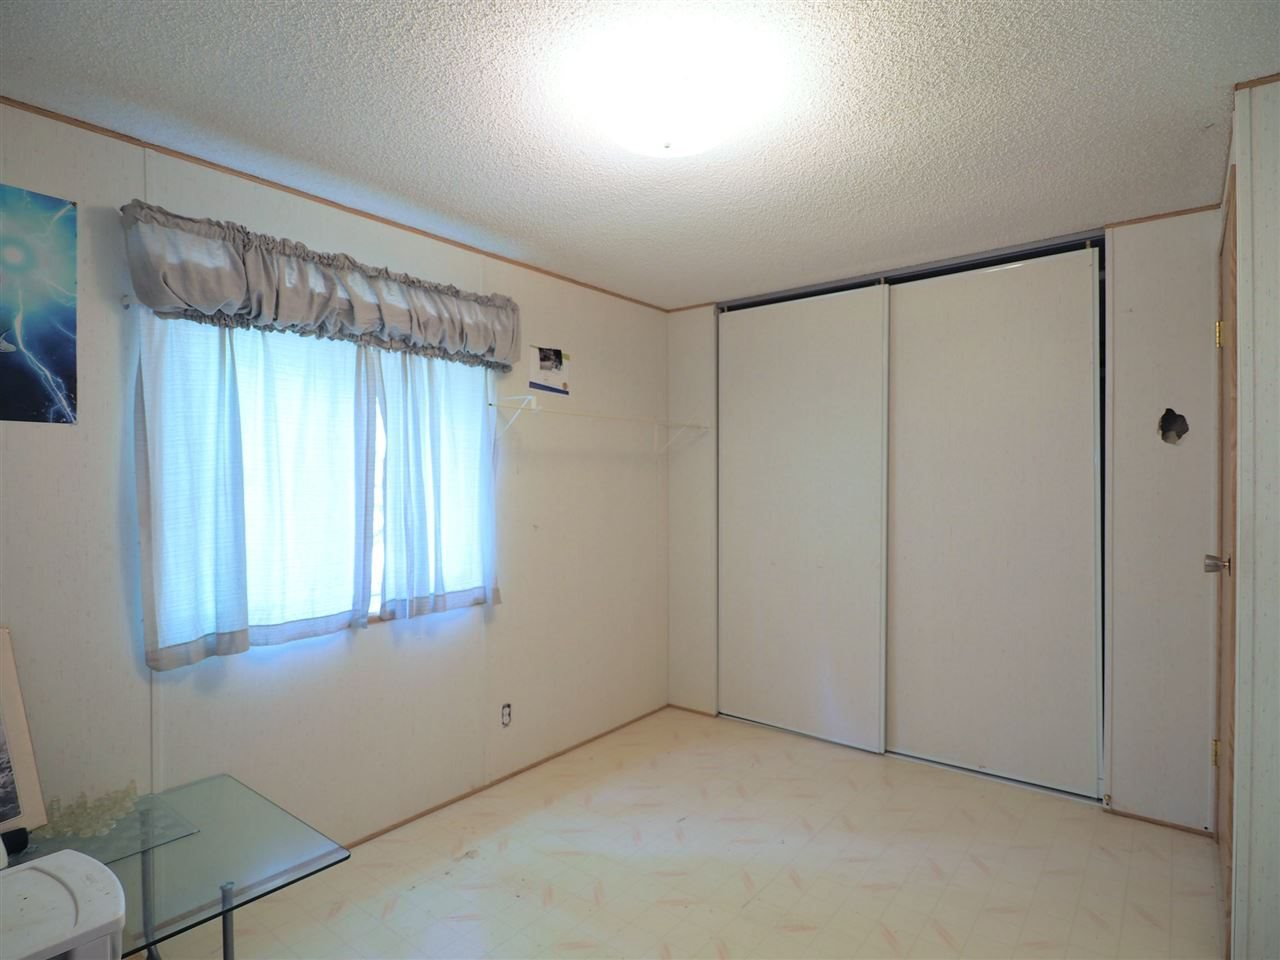 Photo 14: Photos: 4836 GLOINNZUN Drive in 108 Mile Ranch: 108 Ranch Manufactured Home for sale (100 Mile House (Zone 10))  : MLS®# R2435093